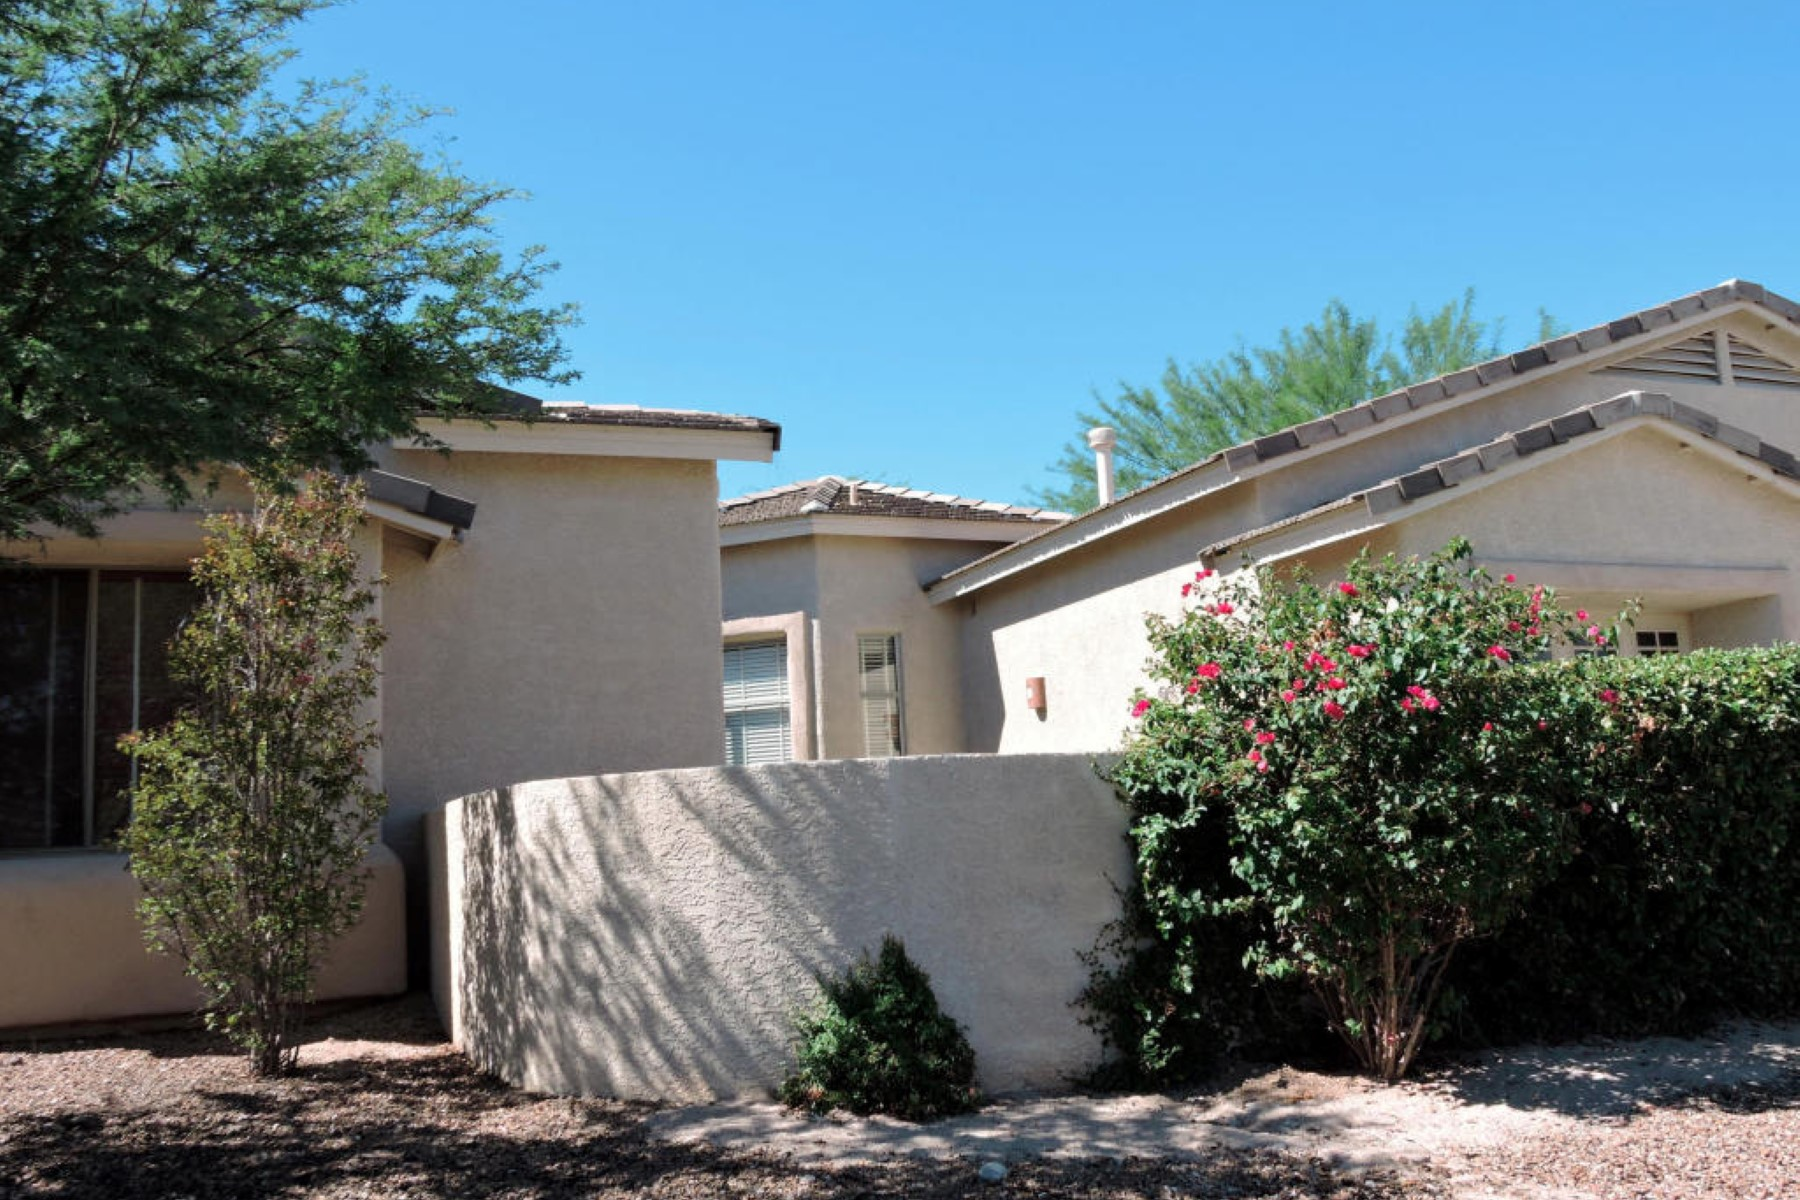 Vivienda unifamiliar por un Venta en Beautiful Desert Oasis On Large Lot With Amazing Landscape & Mature Fruit Trees 11651 N Ribbonwood Drive Tucson, Arizona 85737 Estados Unidos